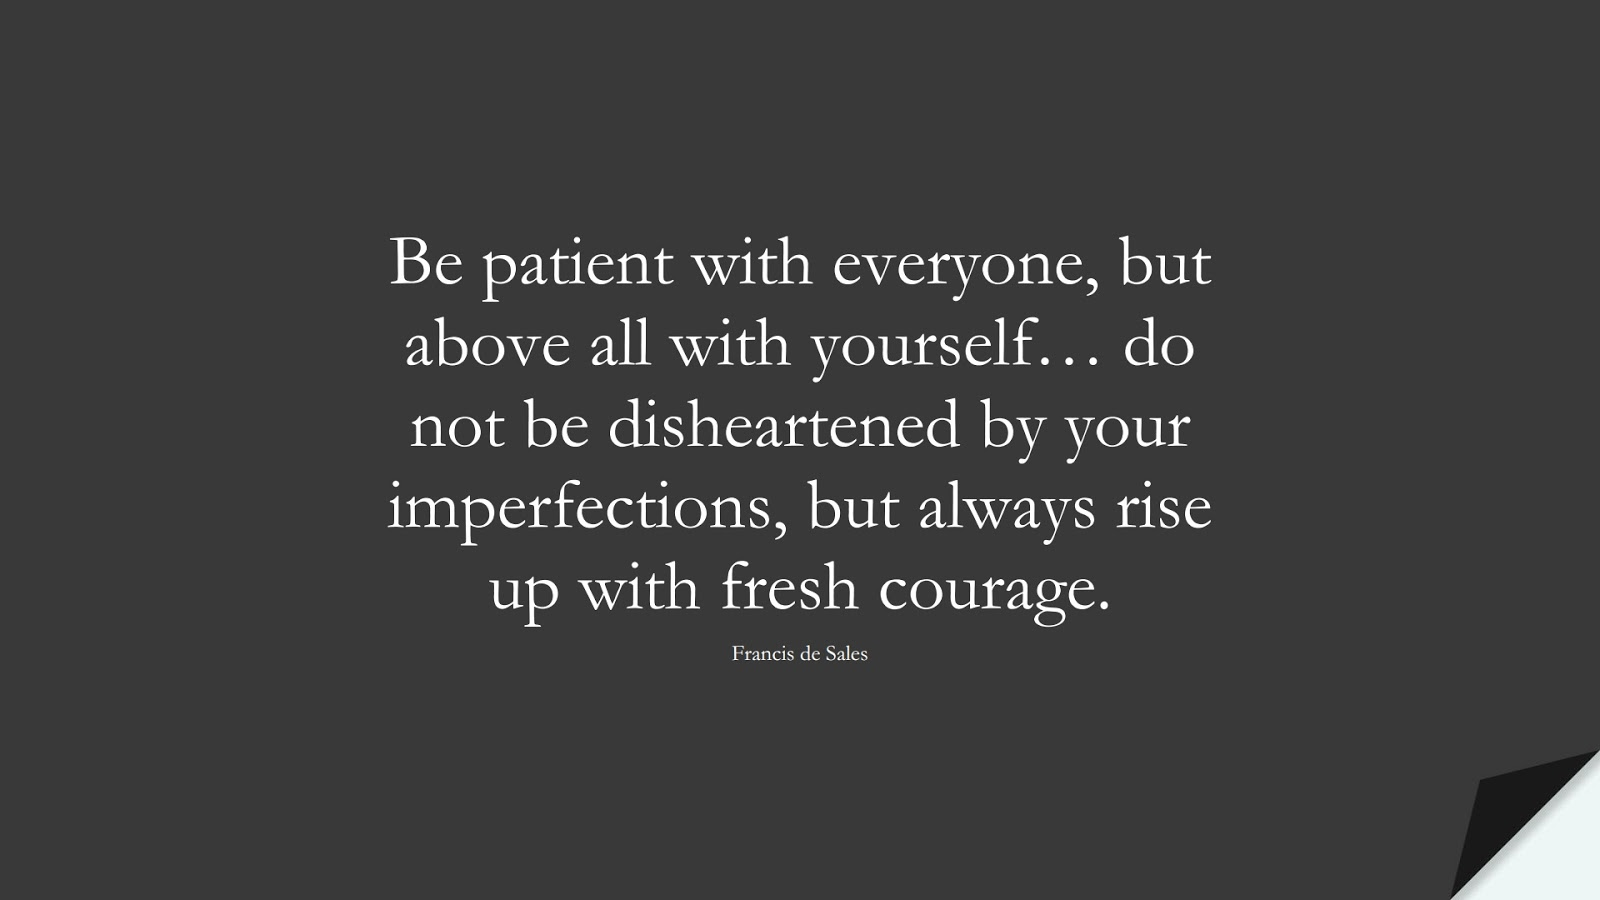 Be patient with everyone, but above all with yourself… do not be disheartened by your imperfections, but always rise up with fresh courage. (Francis de Sales);  #AnxietyQuotes